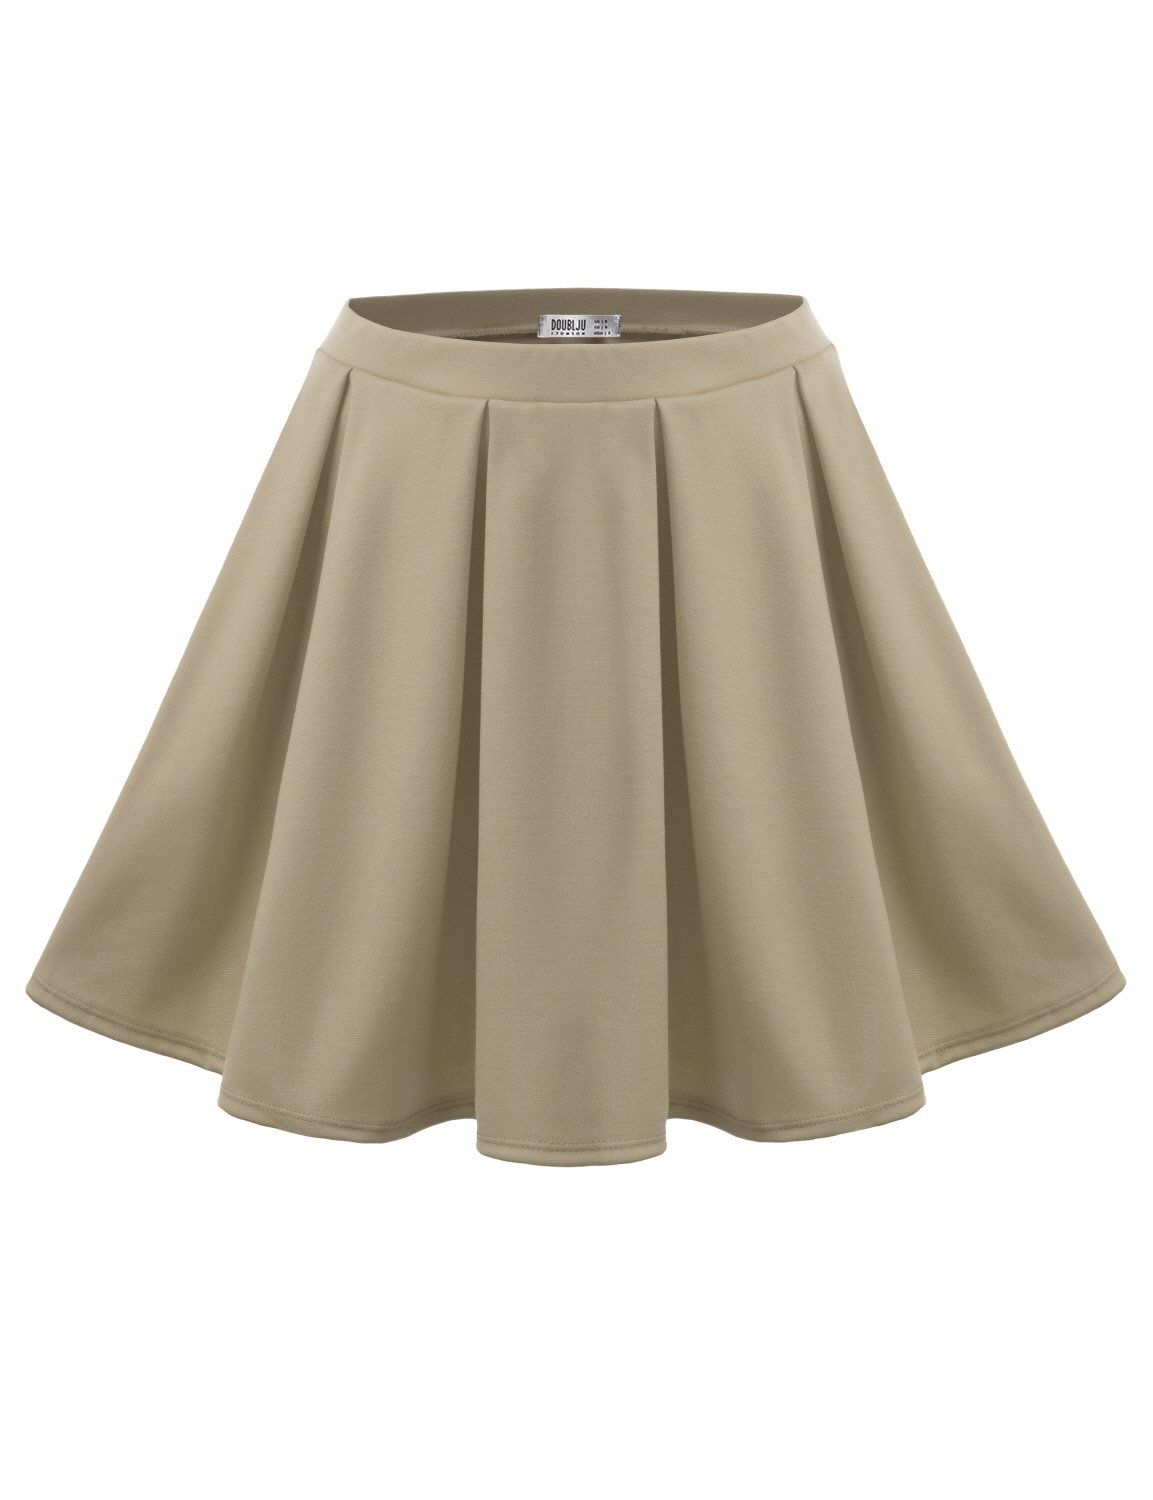 J.TOMSON Women's Classy Basic All Around Pleated Skater Skirt at Amazon Women's Clothing store: